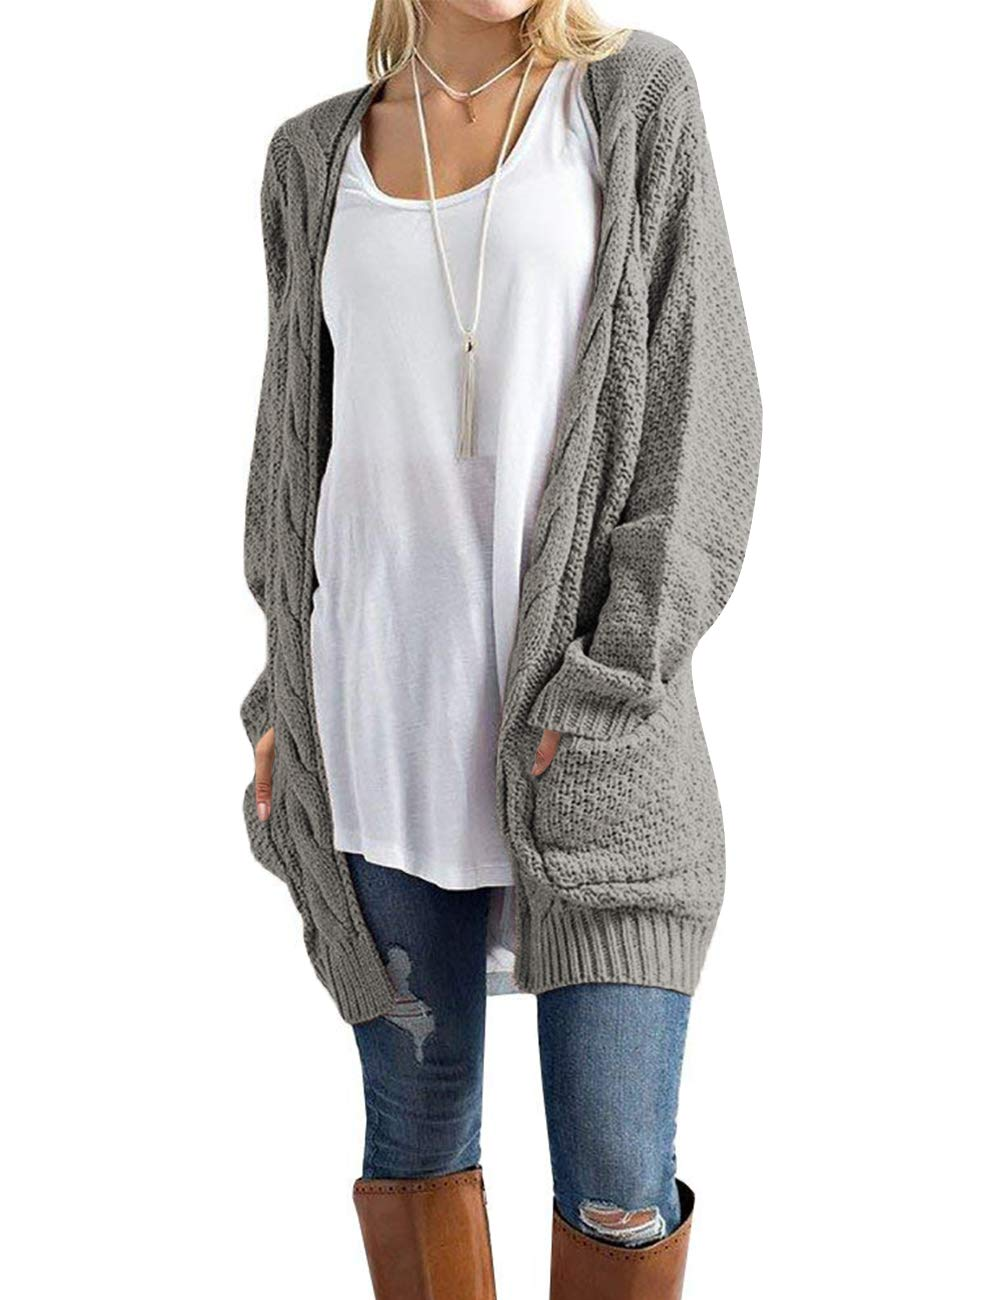 Traleubie Womens Open Front Cardigan Pockets Cable Knit Long Sleeve Sweaters Warm Tops Grey L